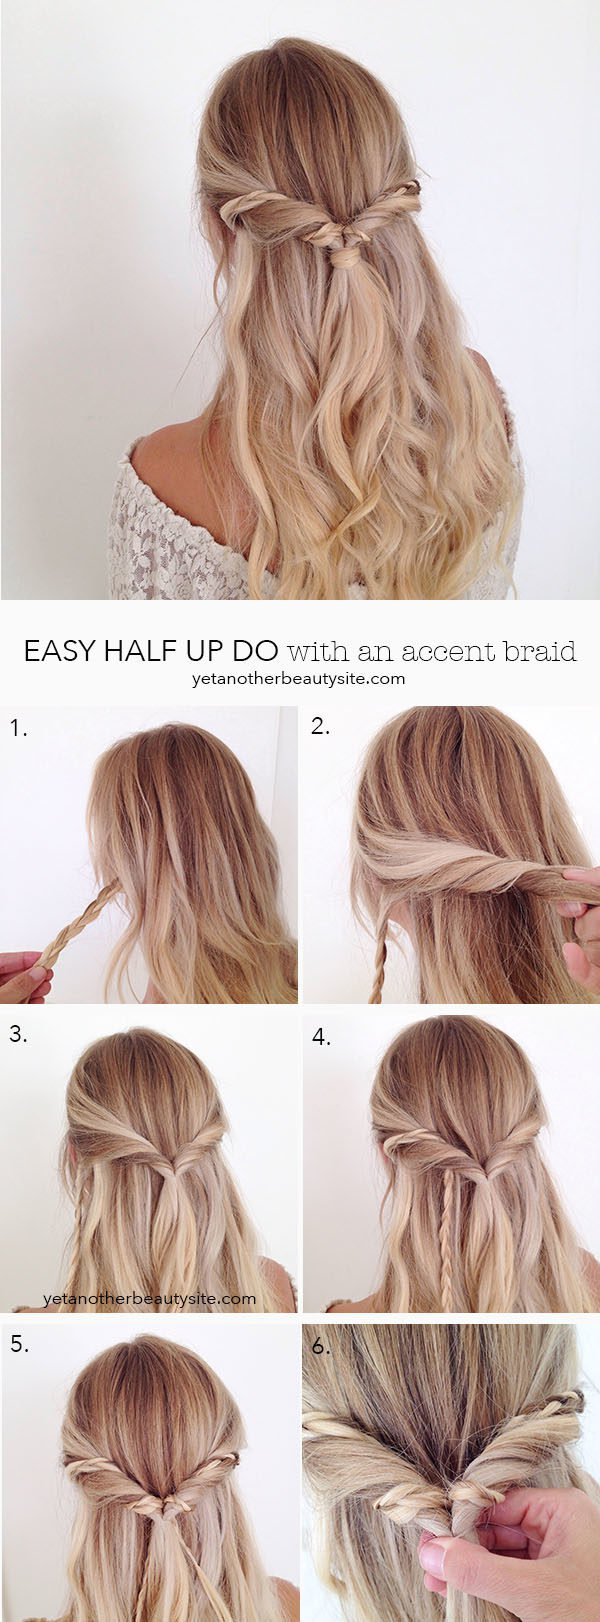 'Last minute' Hairstyles For Modern Look Every Day